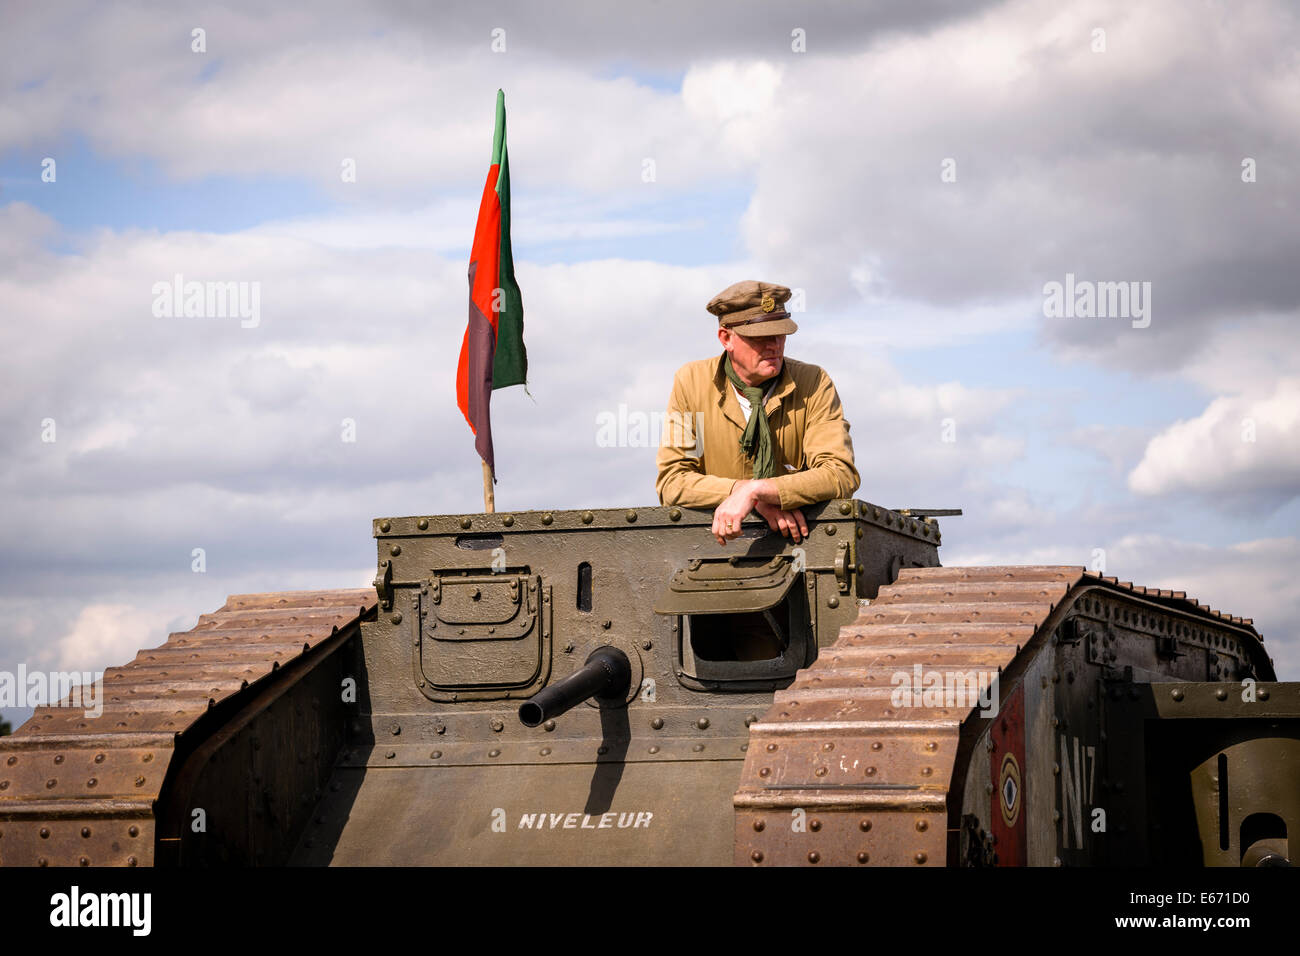 Posing in a N17 Niveleur WW1 Mk lV Tank at The 6th Annual Combined Ops Show at Headcorn Airfield. Featuring fly - Stock Image